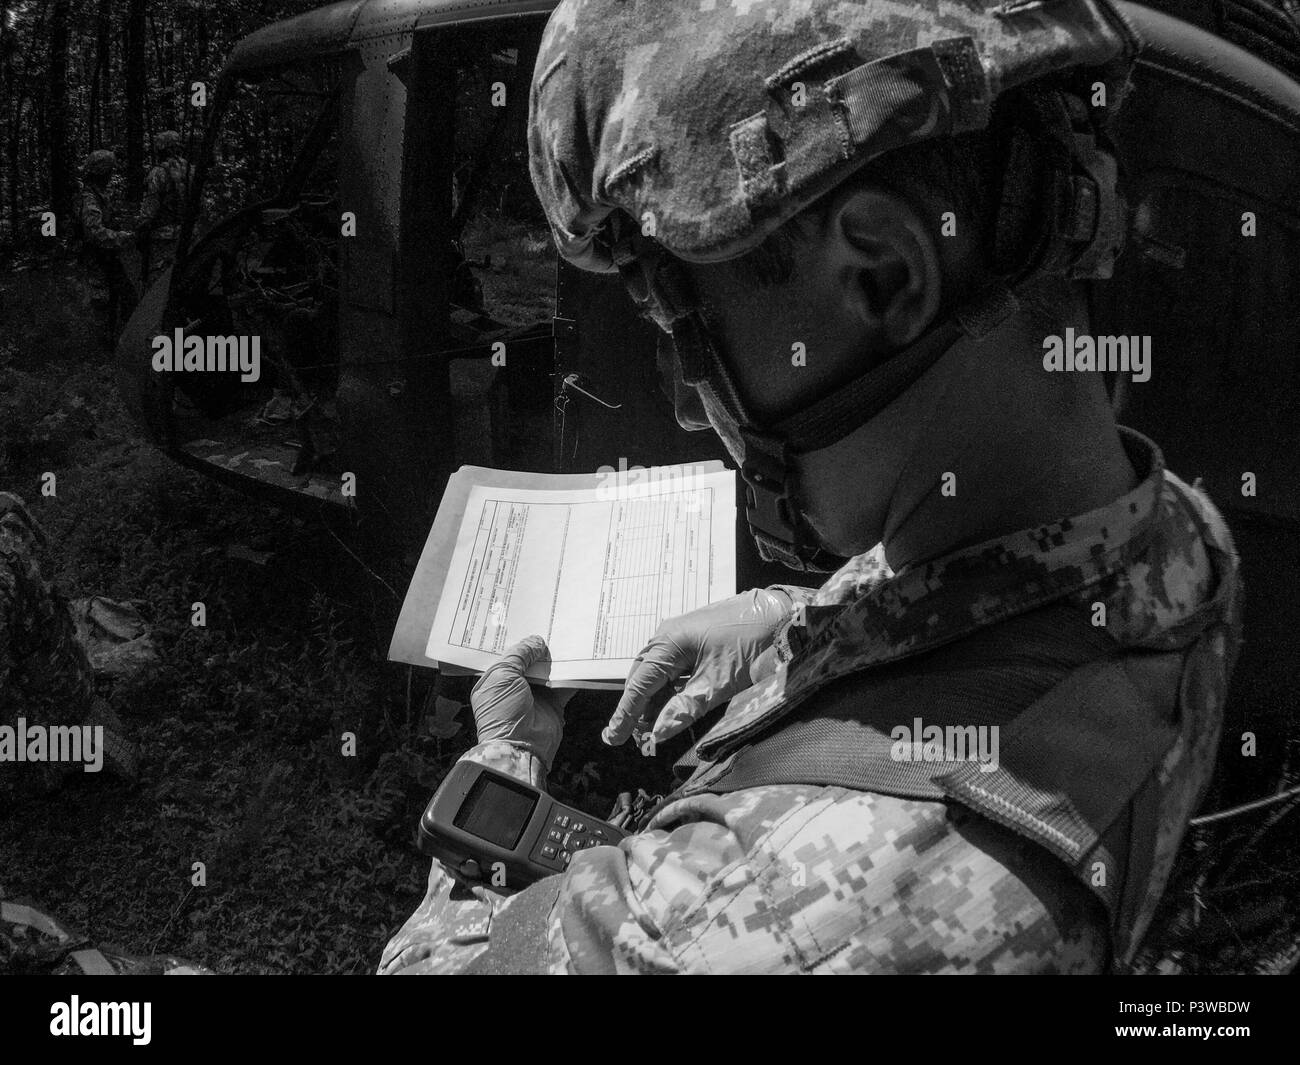 A U.S. Army Reserve soldier with the 246th Quartermaster Company (Mortuary Affairs), Mayaguez, Puerto Rico, pulls GPS coordinates for a search and recovery report at a simulated helicopter crash during Mortuary Affairs Exercise 16-02, July 21, at Fort Pickett, Va. MAX 16-02 included all six U.S. Army Reserve Mortuary Affairs units performing search and recovery missions and operating Mortuary Affairs Collection Points and a Theater Mortuary Evacuation Point. The units were evaluated by active-duty mortuary affairs personnel from nearby Fort Lee, Va. (U.S. Army photo by Timothy L. Hale)(Release - Stock Image